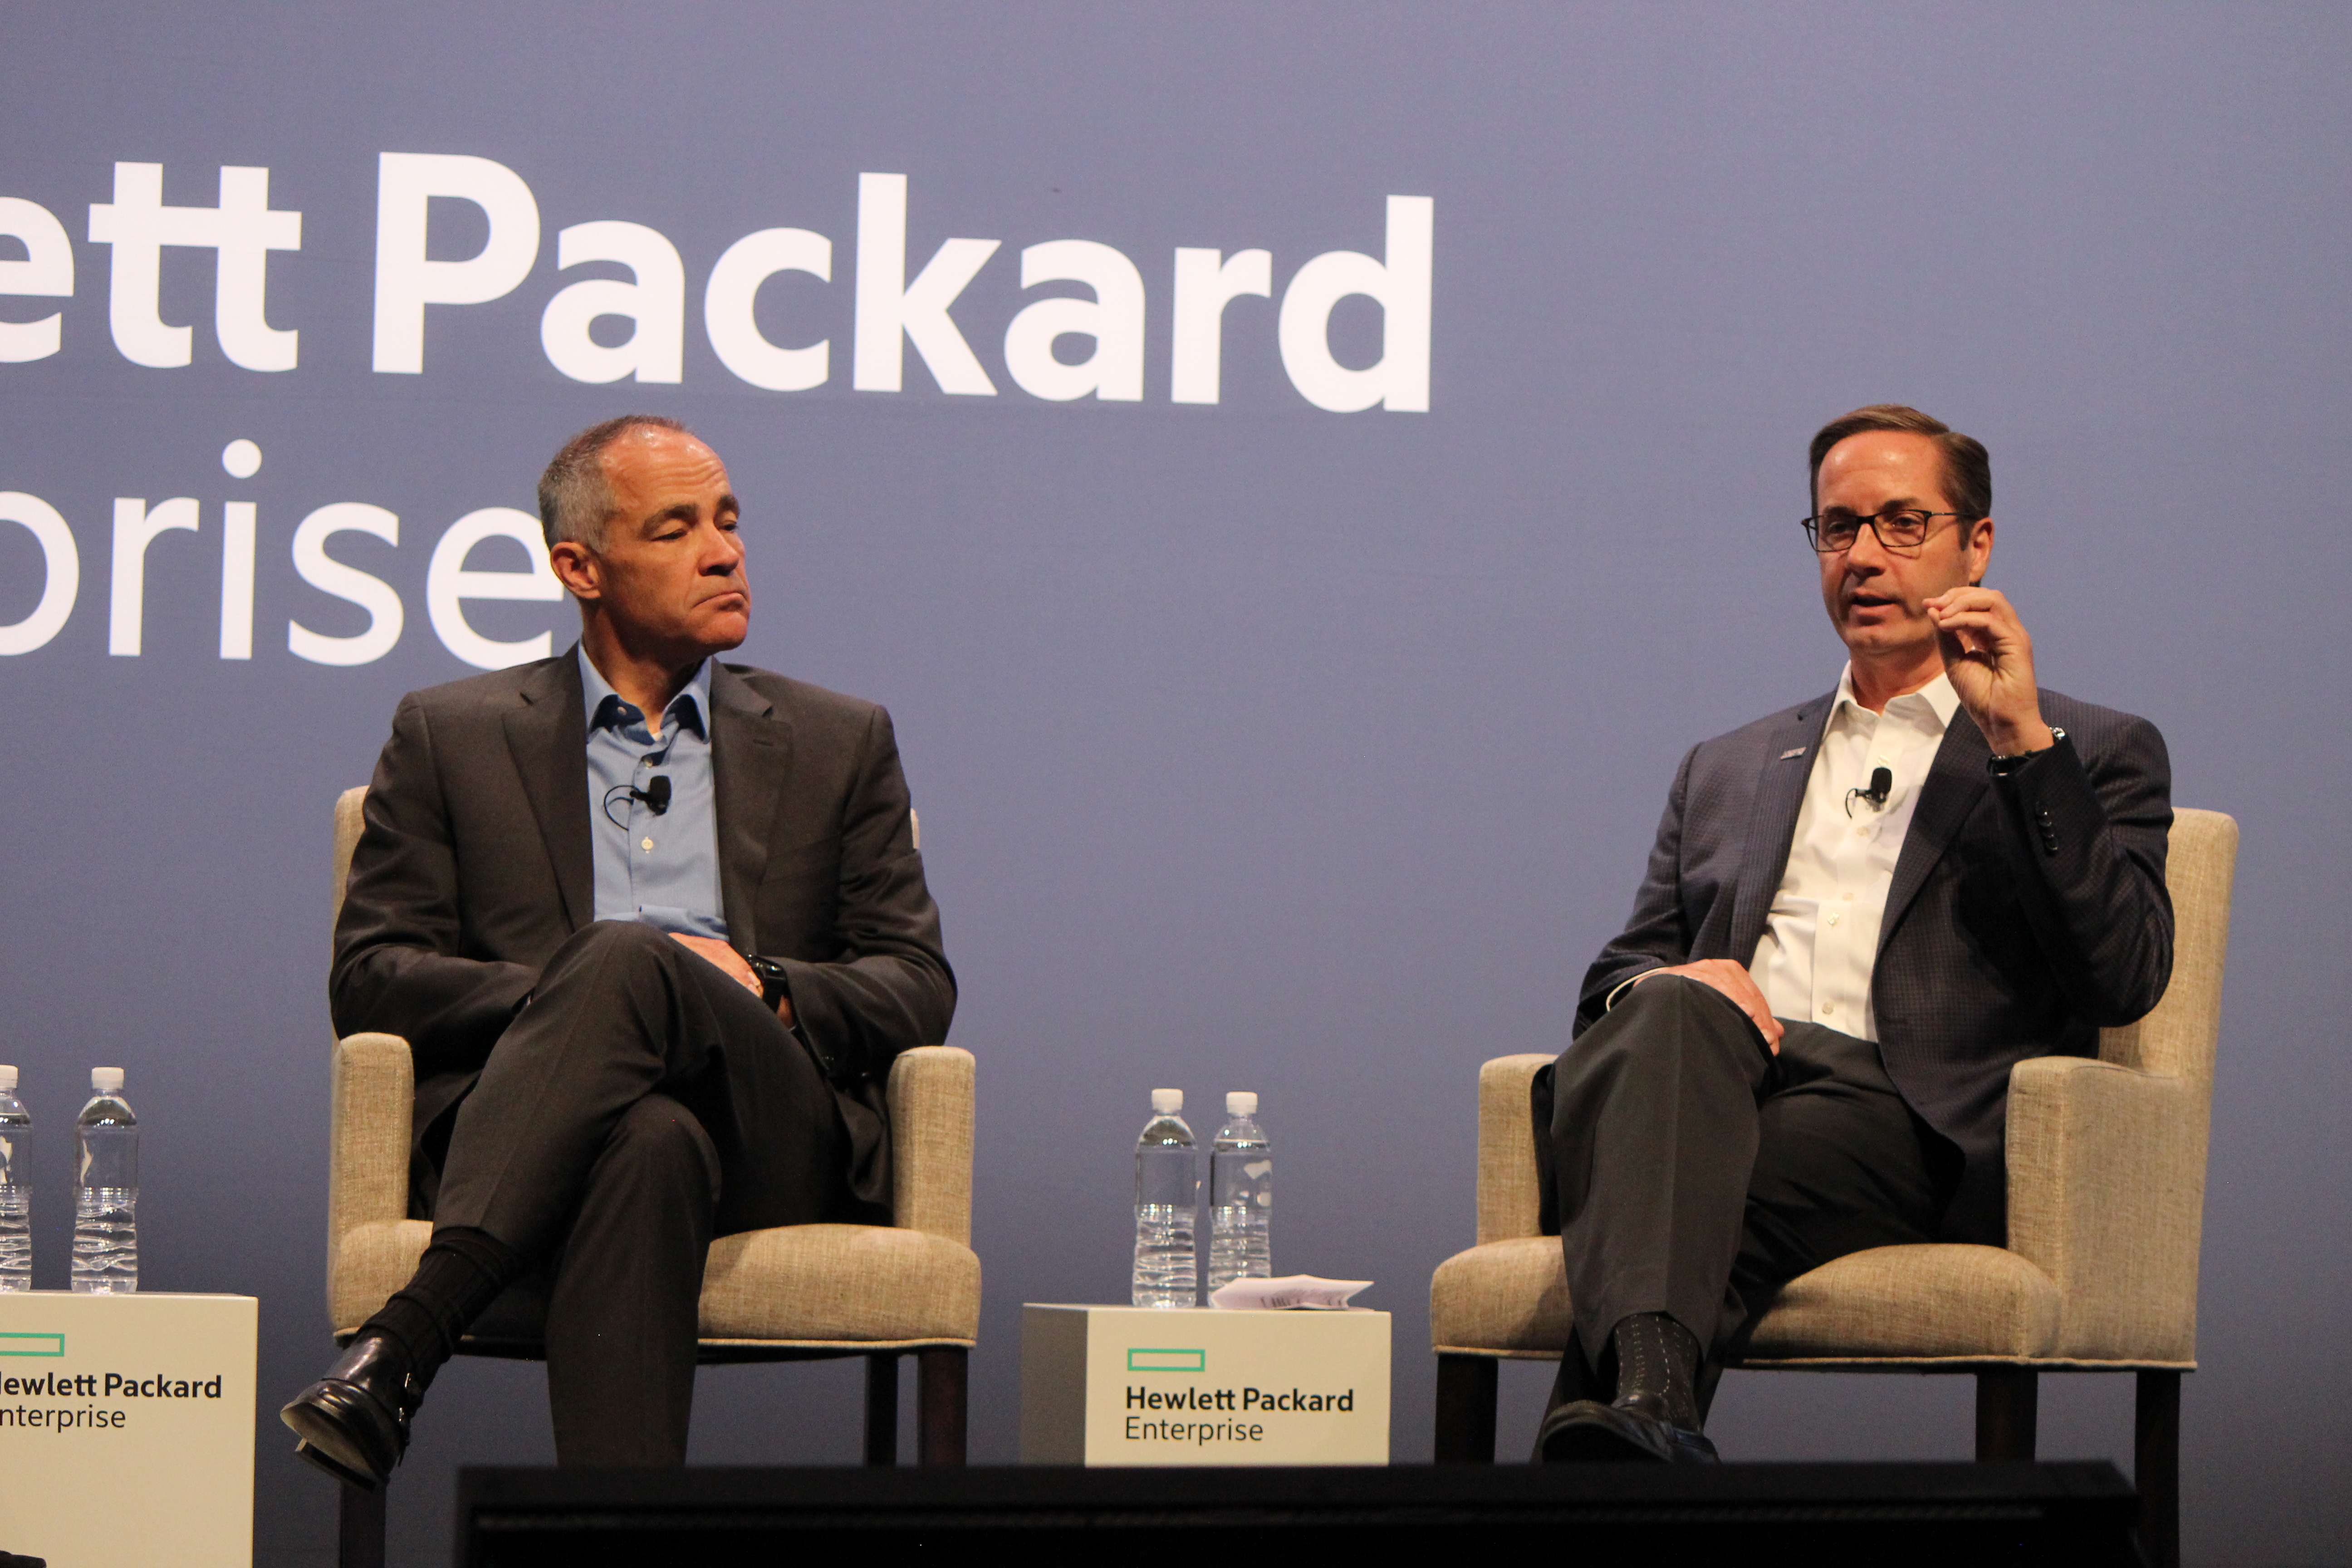 HPE Discover 2018 - Ric Lewis and John Treadway